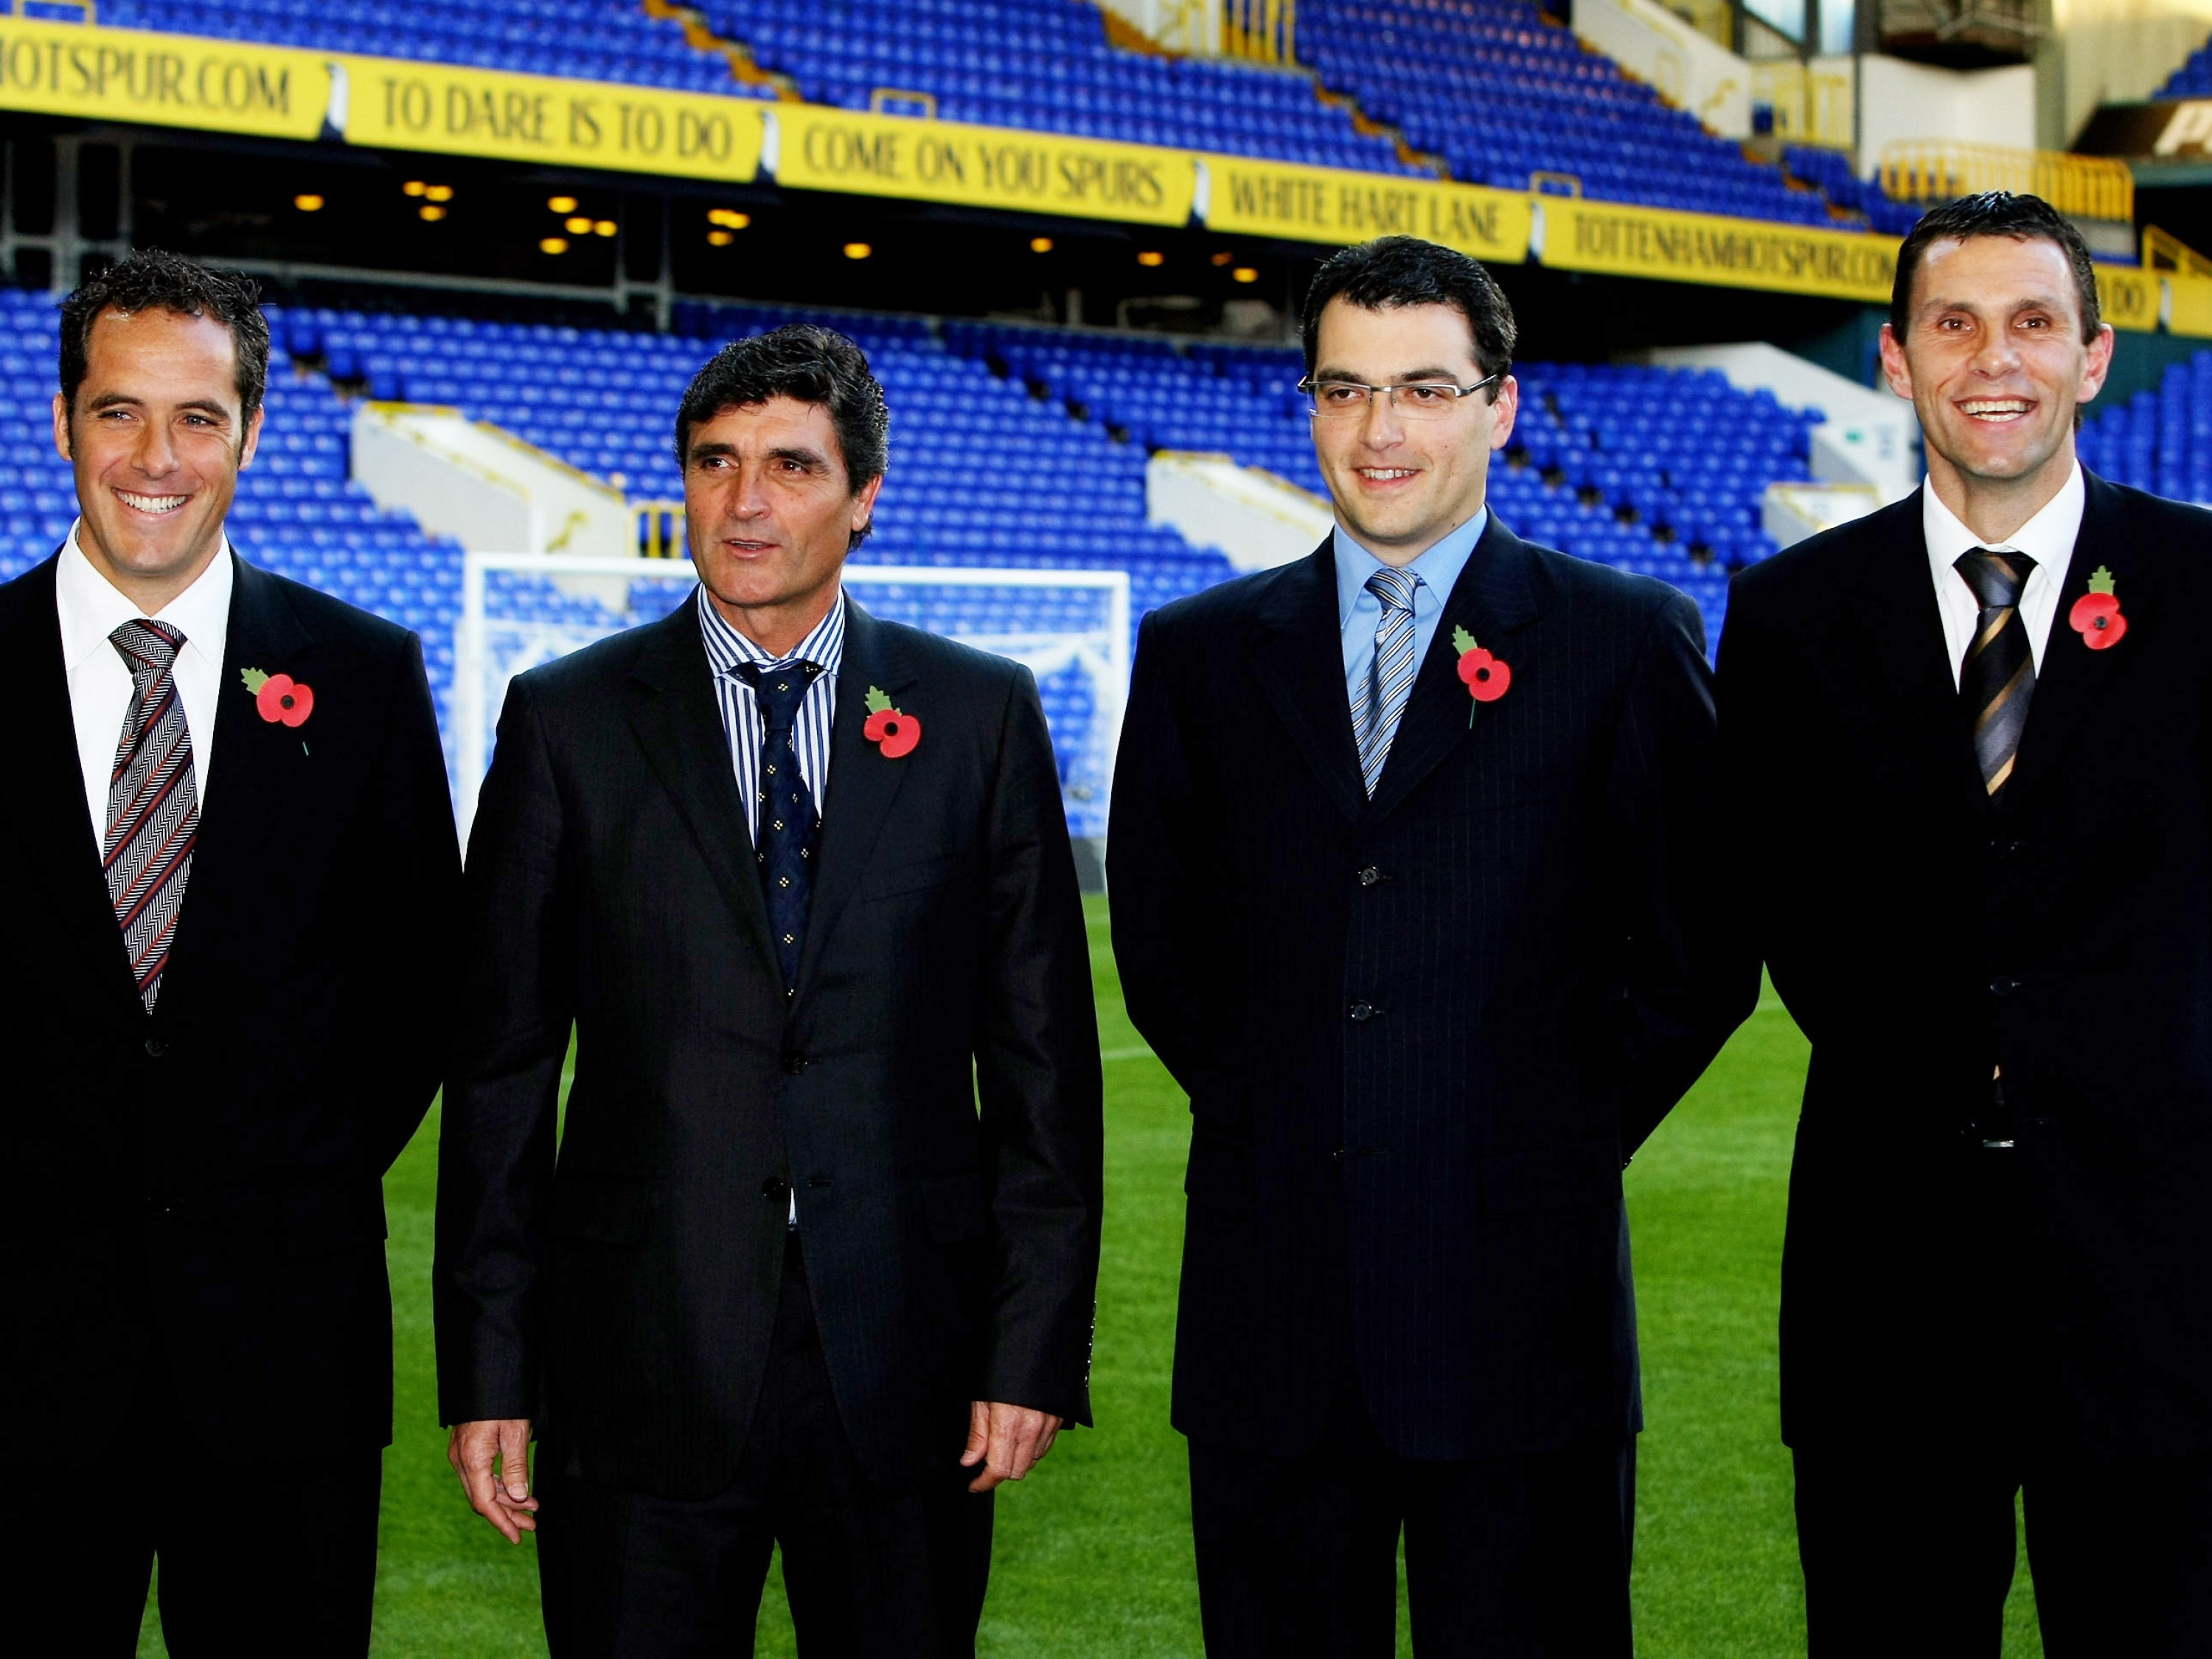 New-Tottenham-Hotspur-Coaching-Staff-Photocall-1560676455.jpg